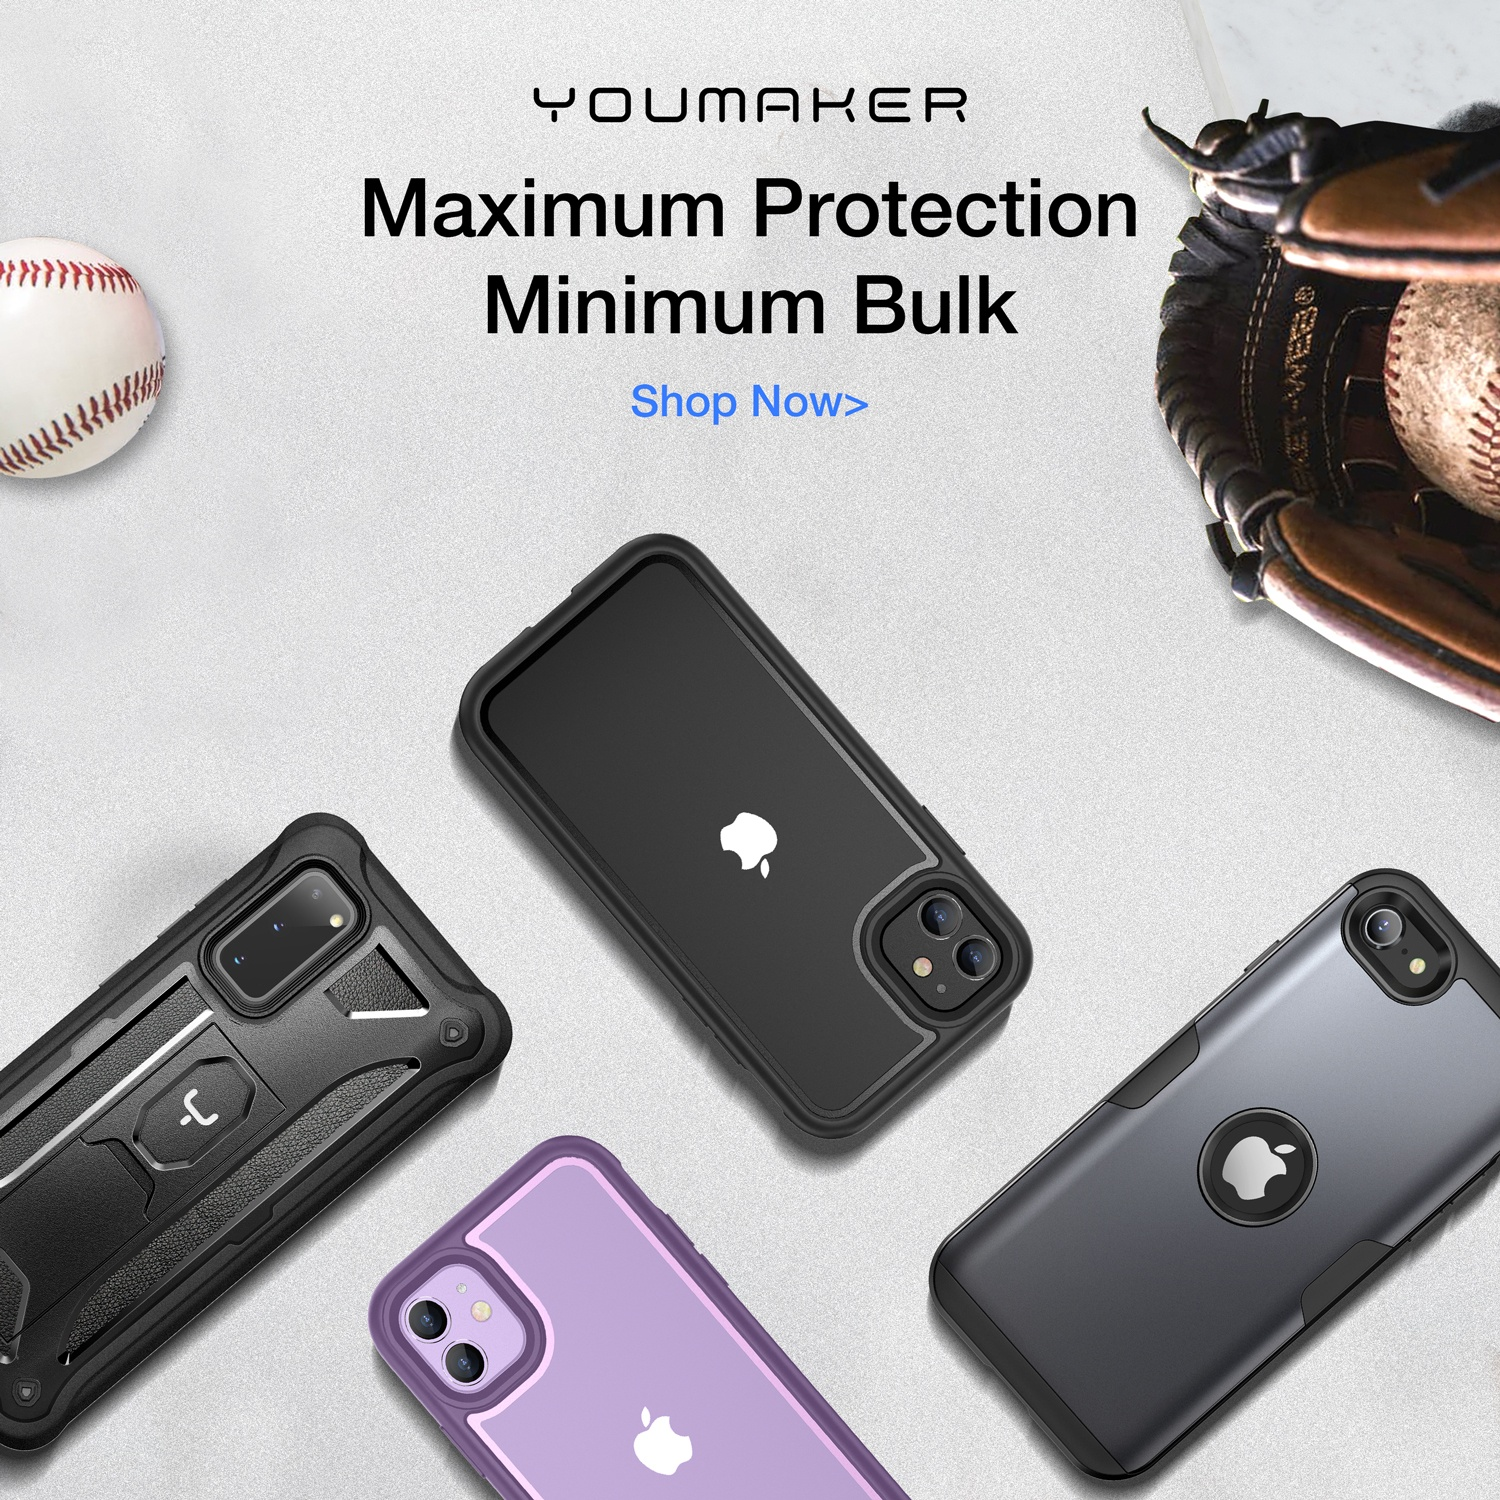 YOUMAKER: Maximum Protection, Minimum Bulk [Sponsor]